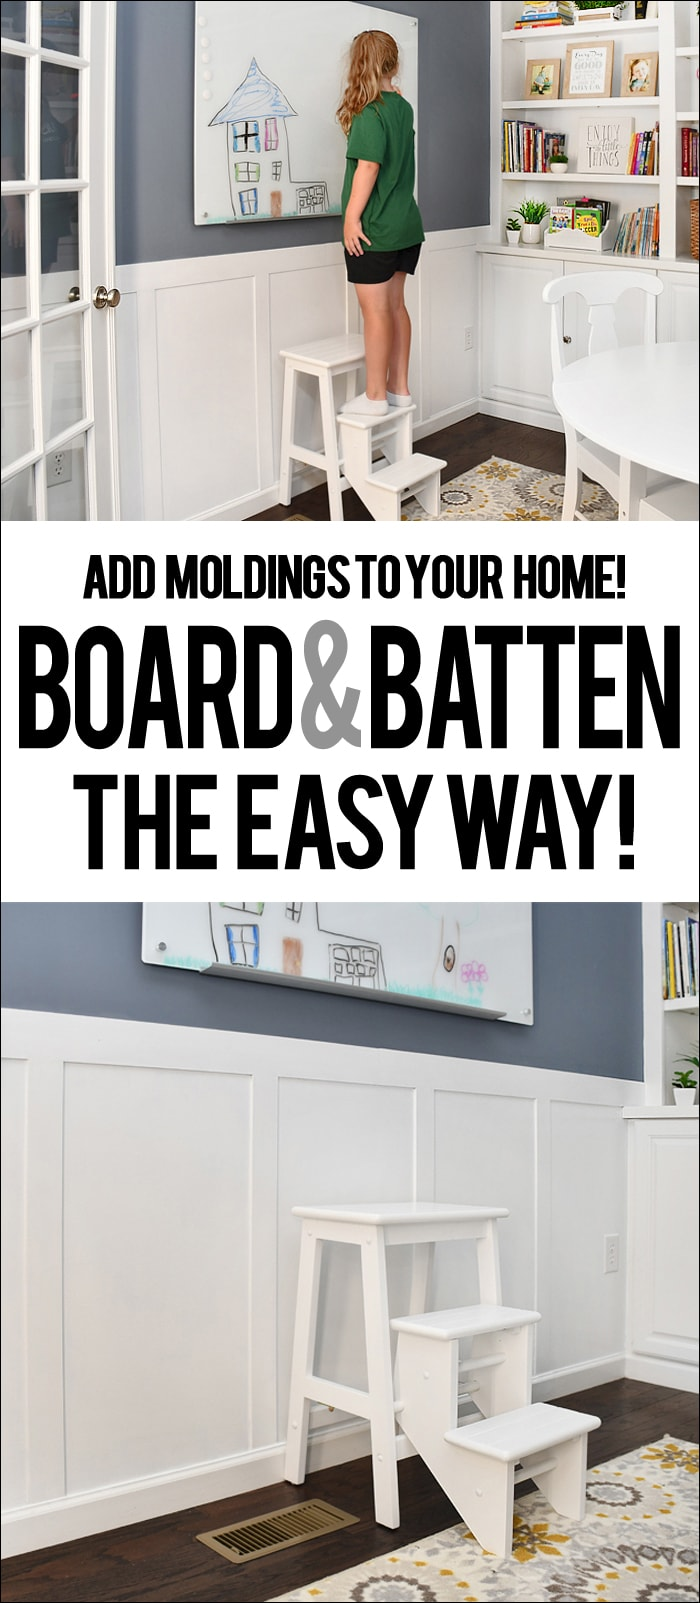 Add moldings to your home board & batten the easy way poster.